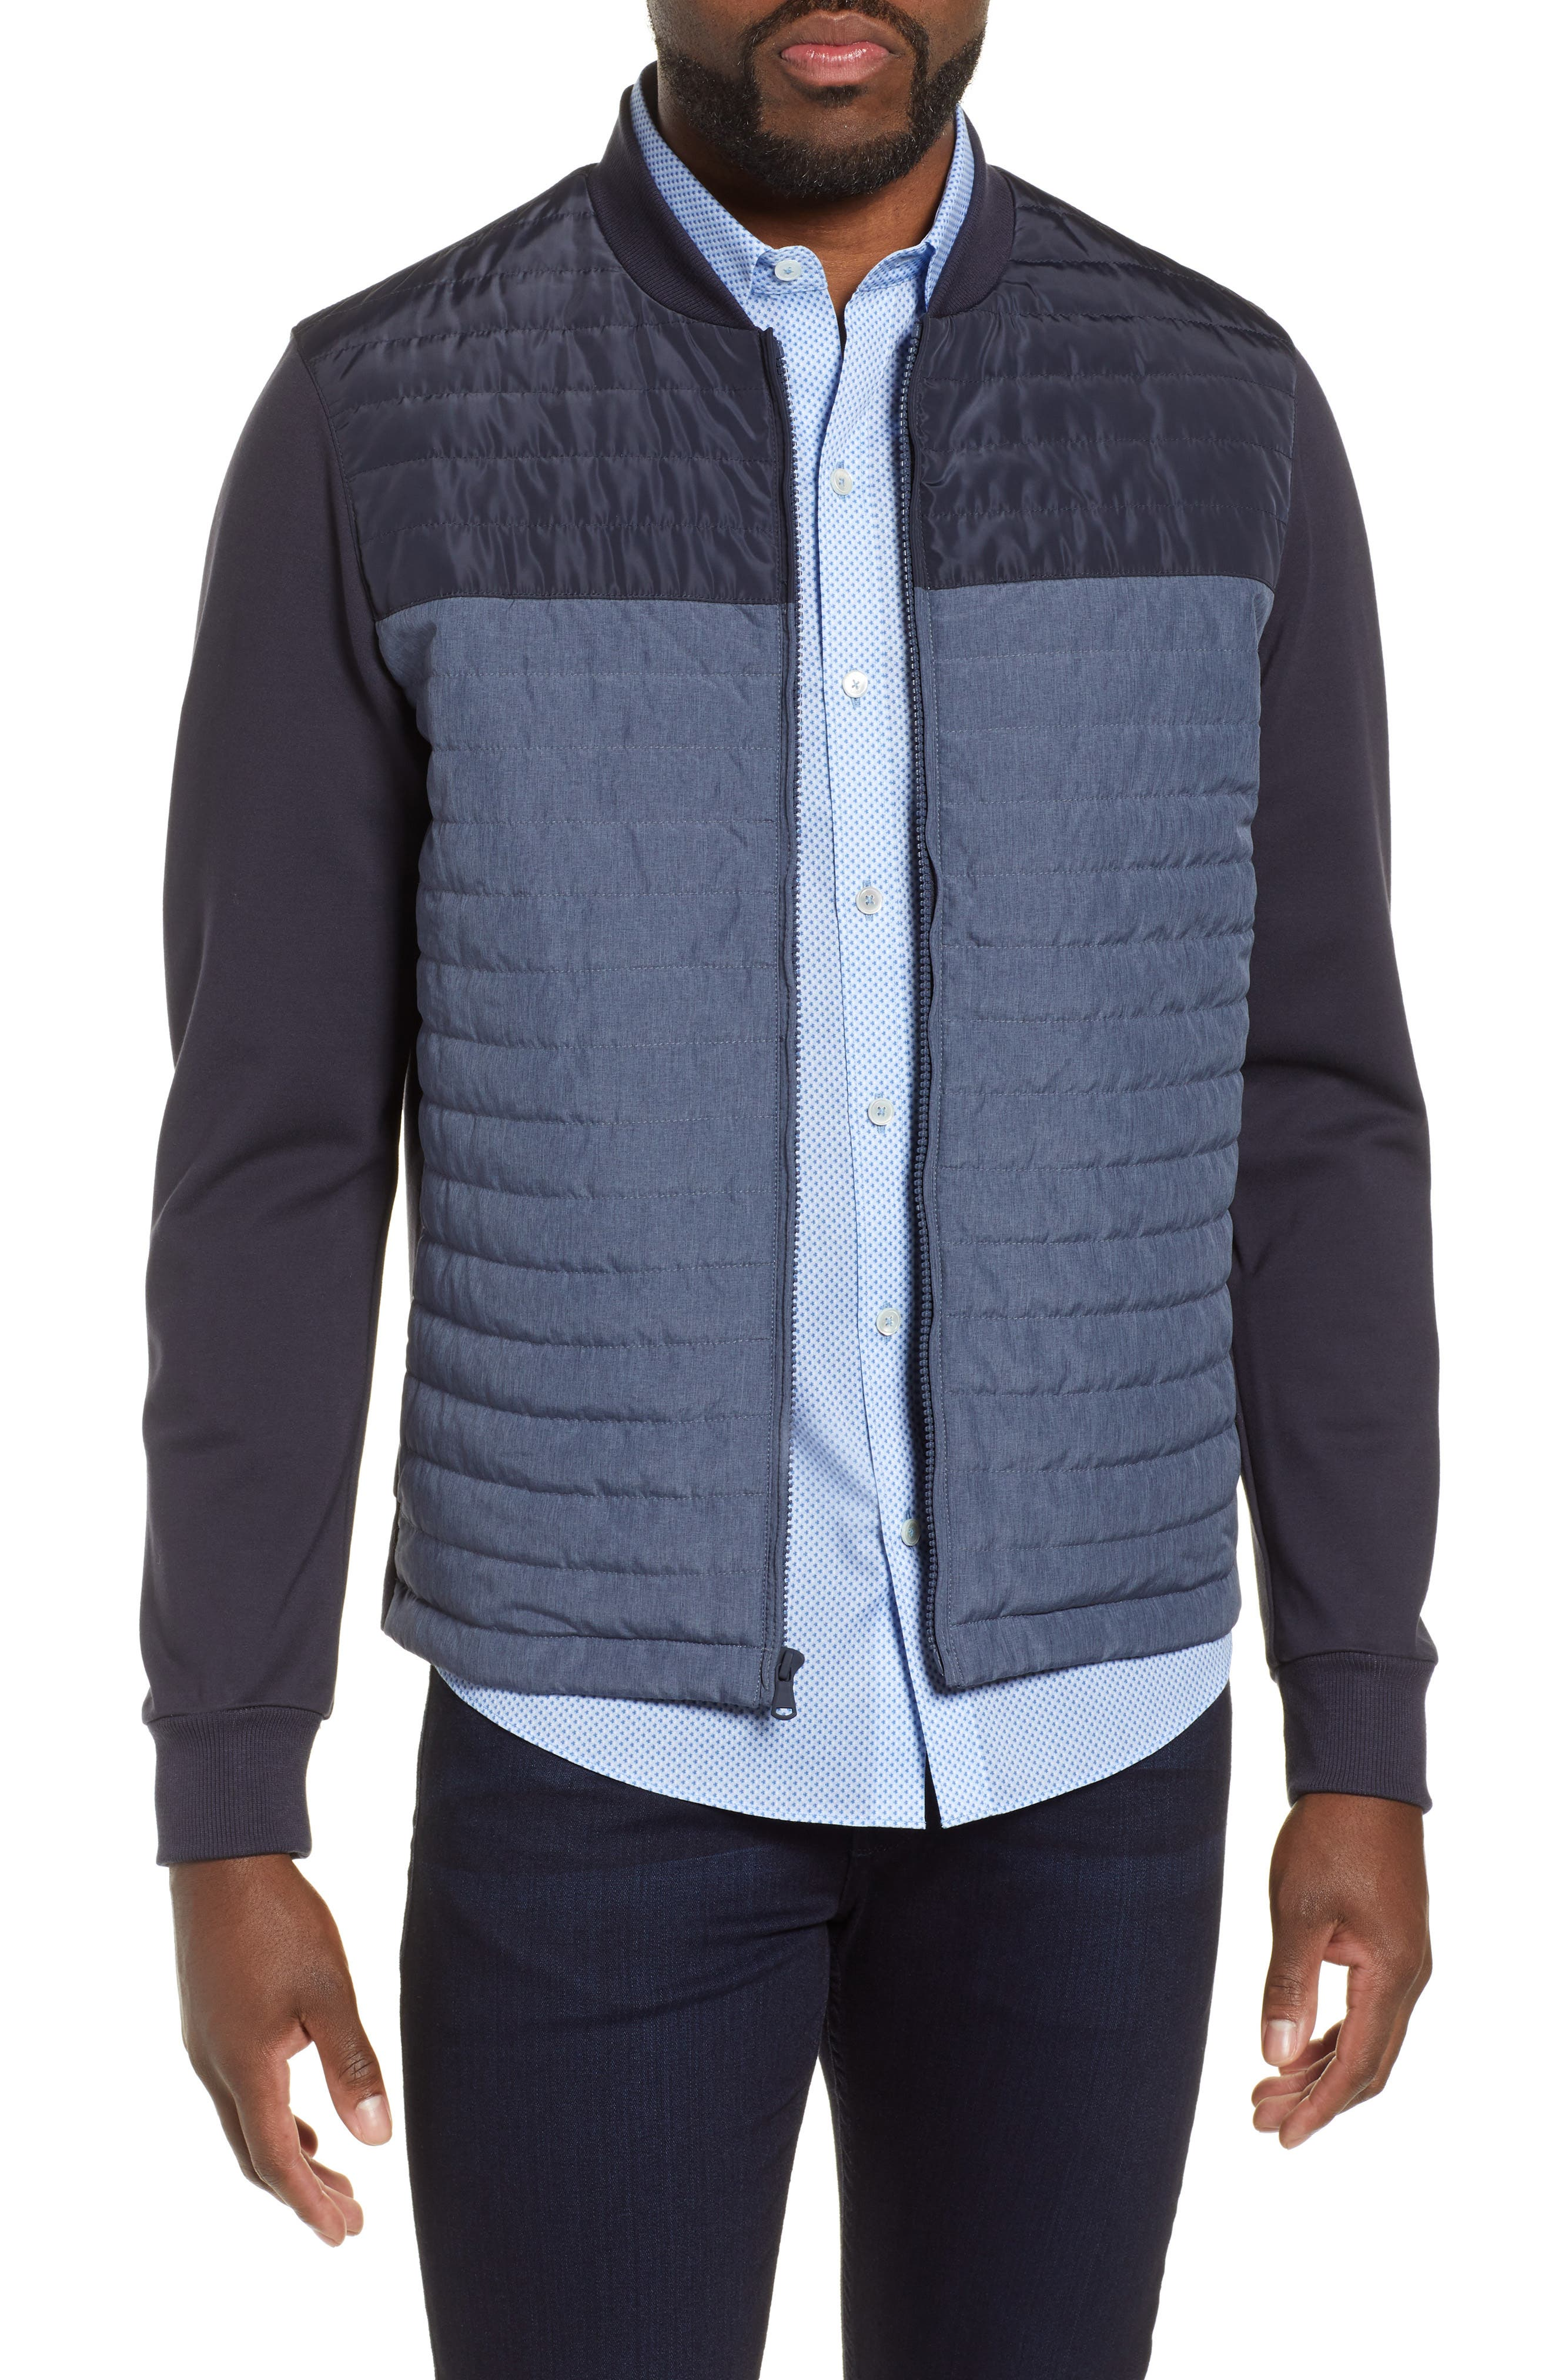 ZACHARY PRELL, Montauk Quilted Bomber Jacket, Main thumbnail 1, color, NAVY